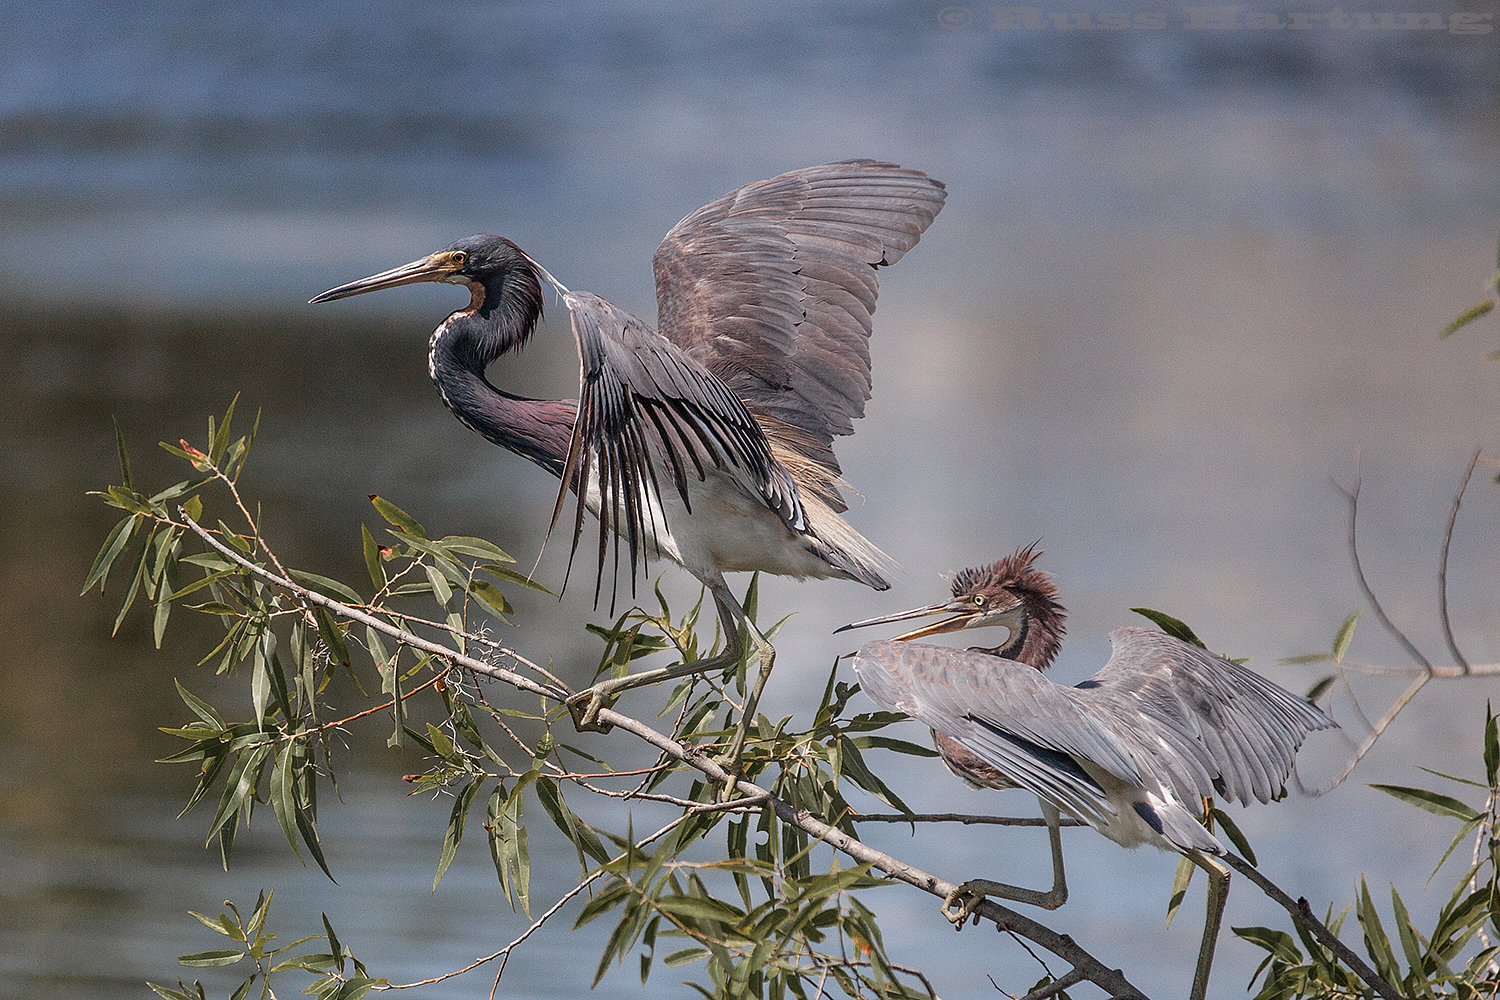 Two tricolored Heron's battling over a perch. Palmetto Bluff, South Carolina.